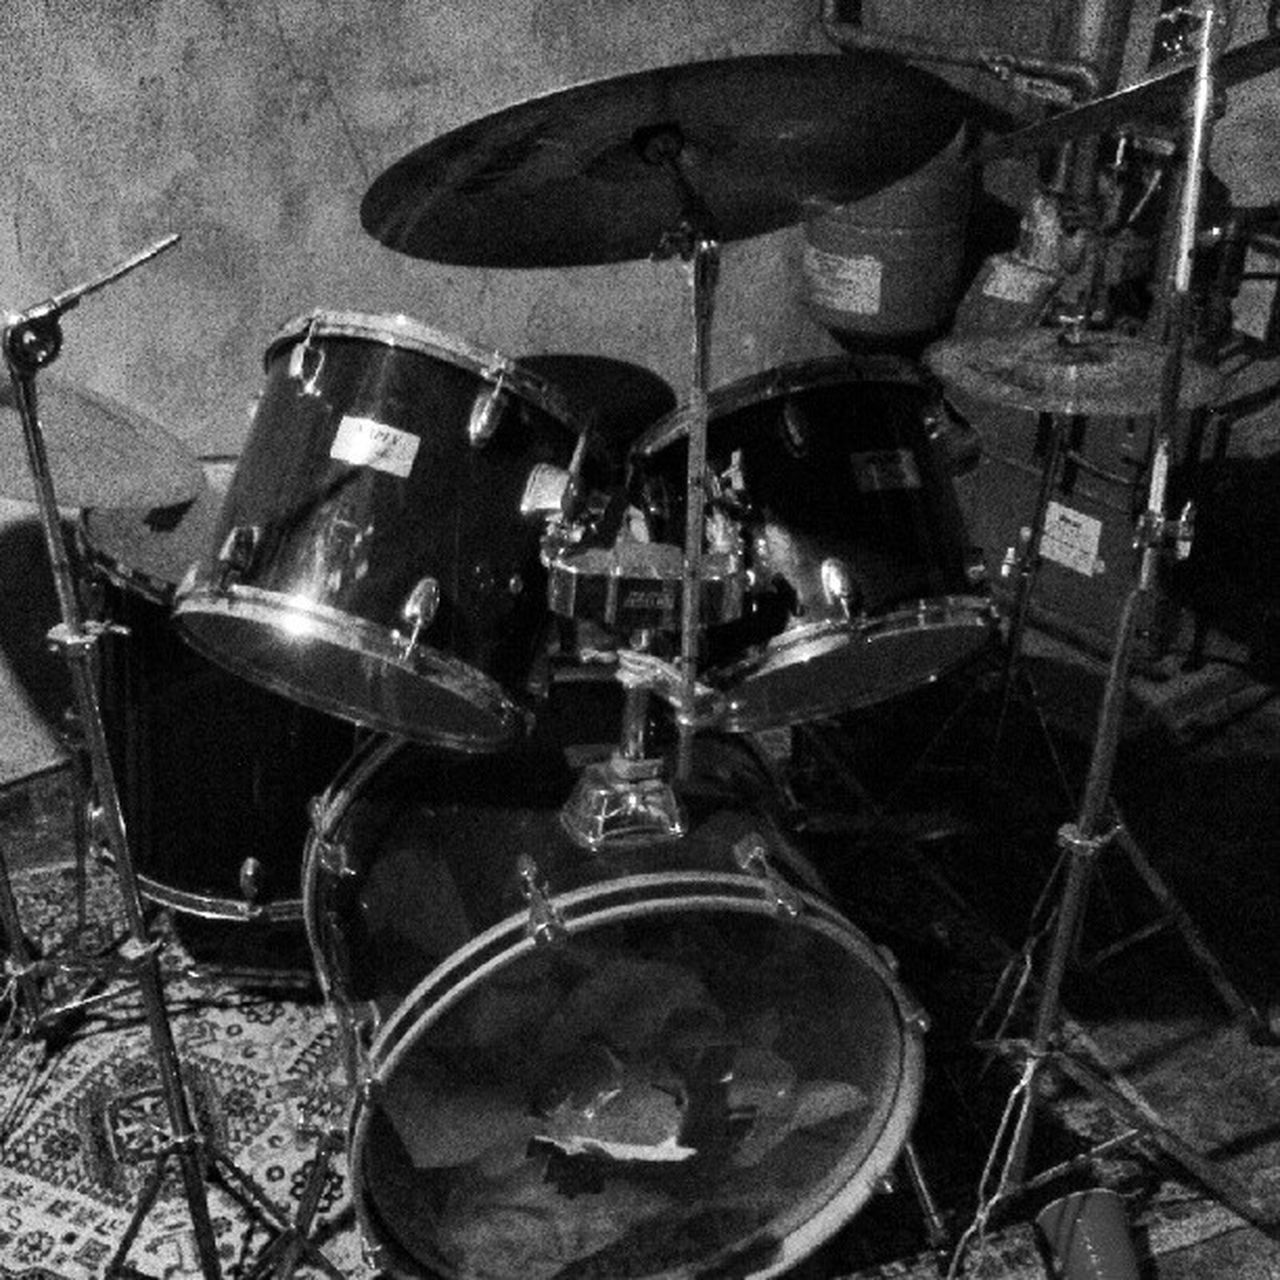 music, musical instrument, drum kit, drum - percussion instrument, arts culture and entertainment, cymbal, recording studio, indoors, drum, no people, close-up, day